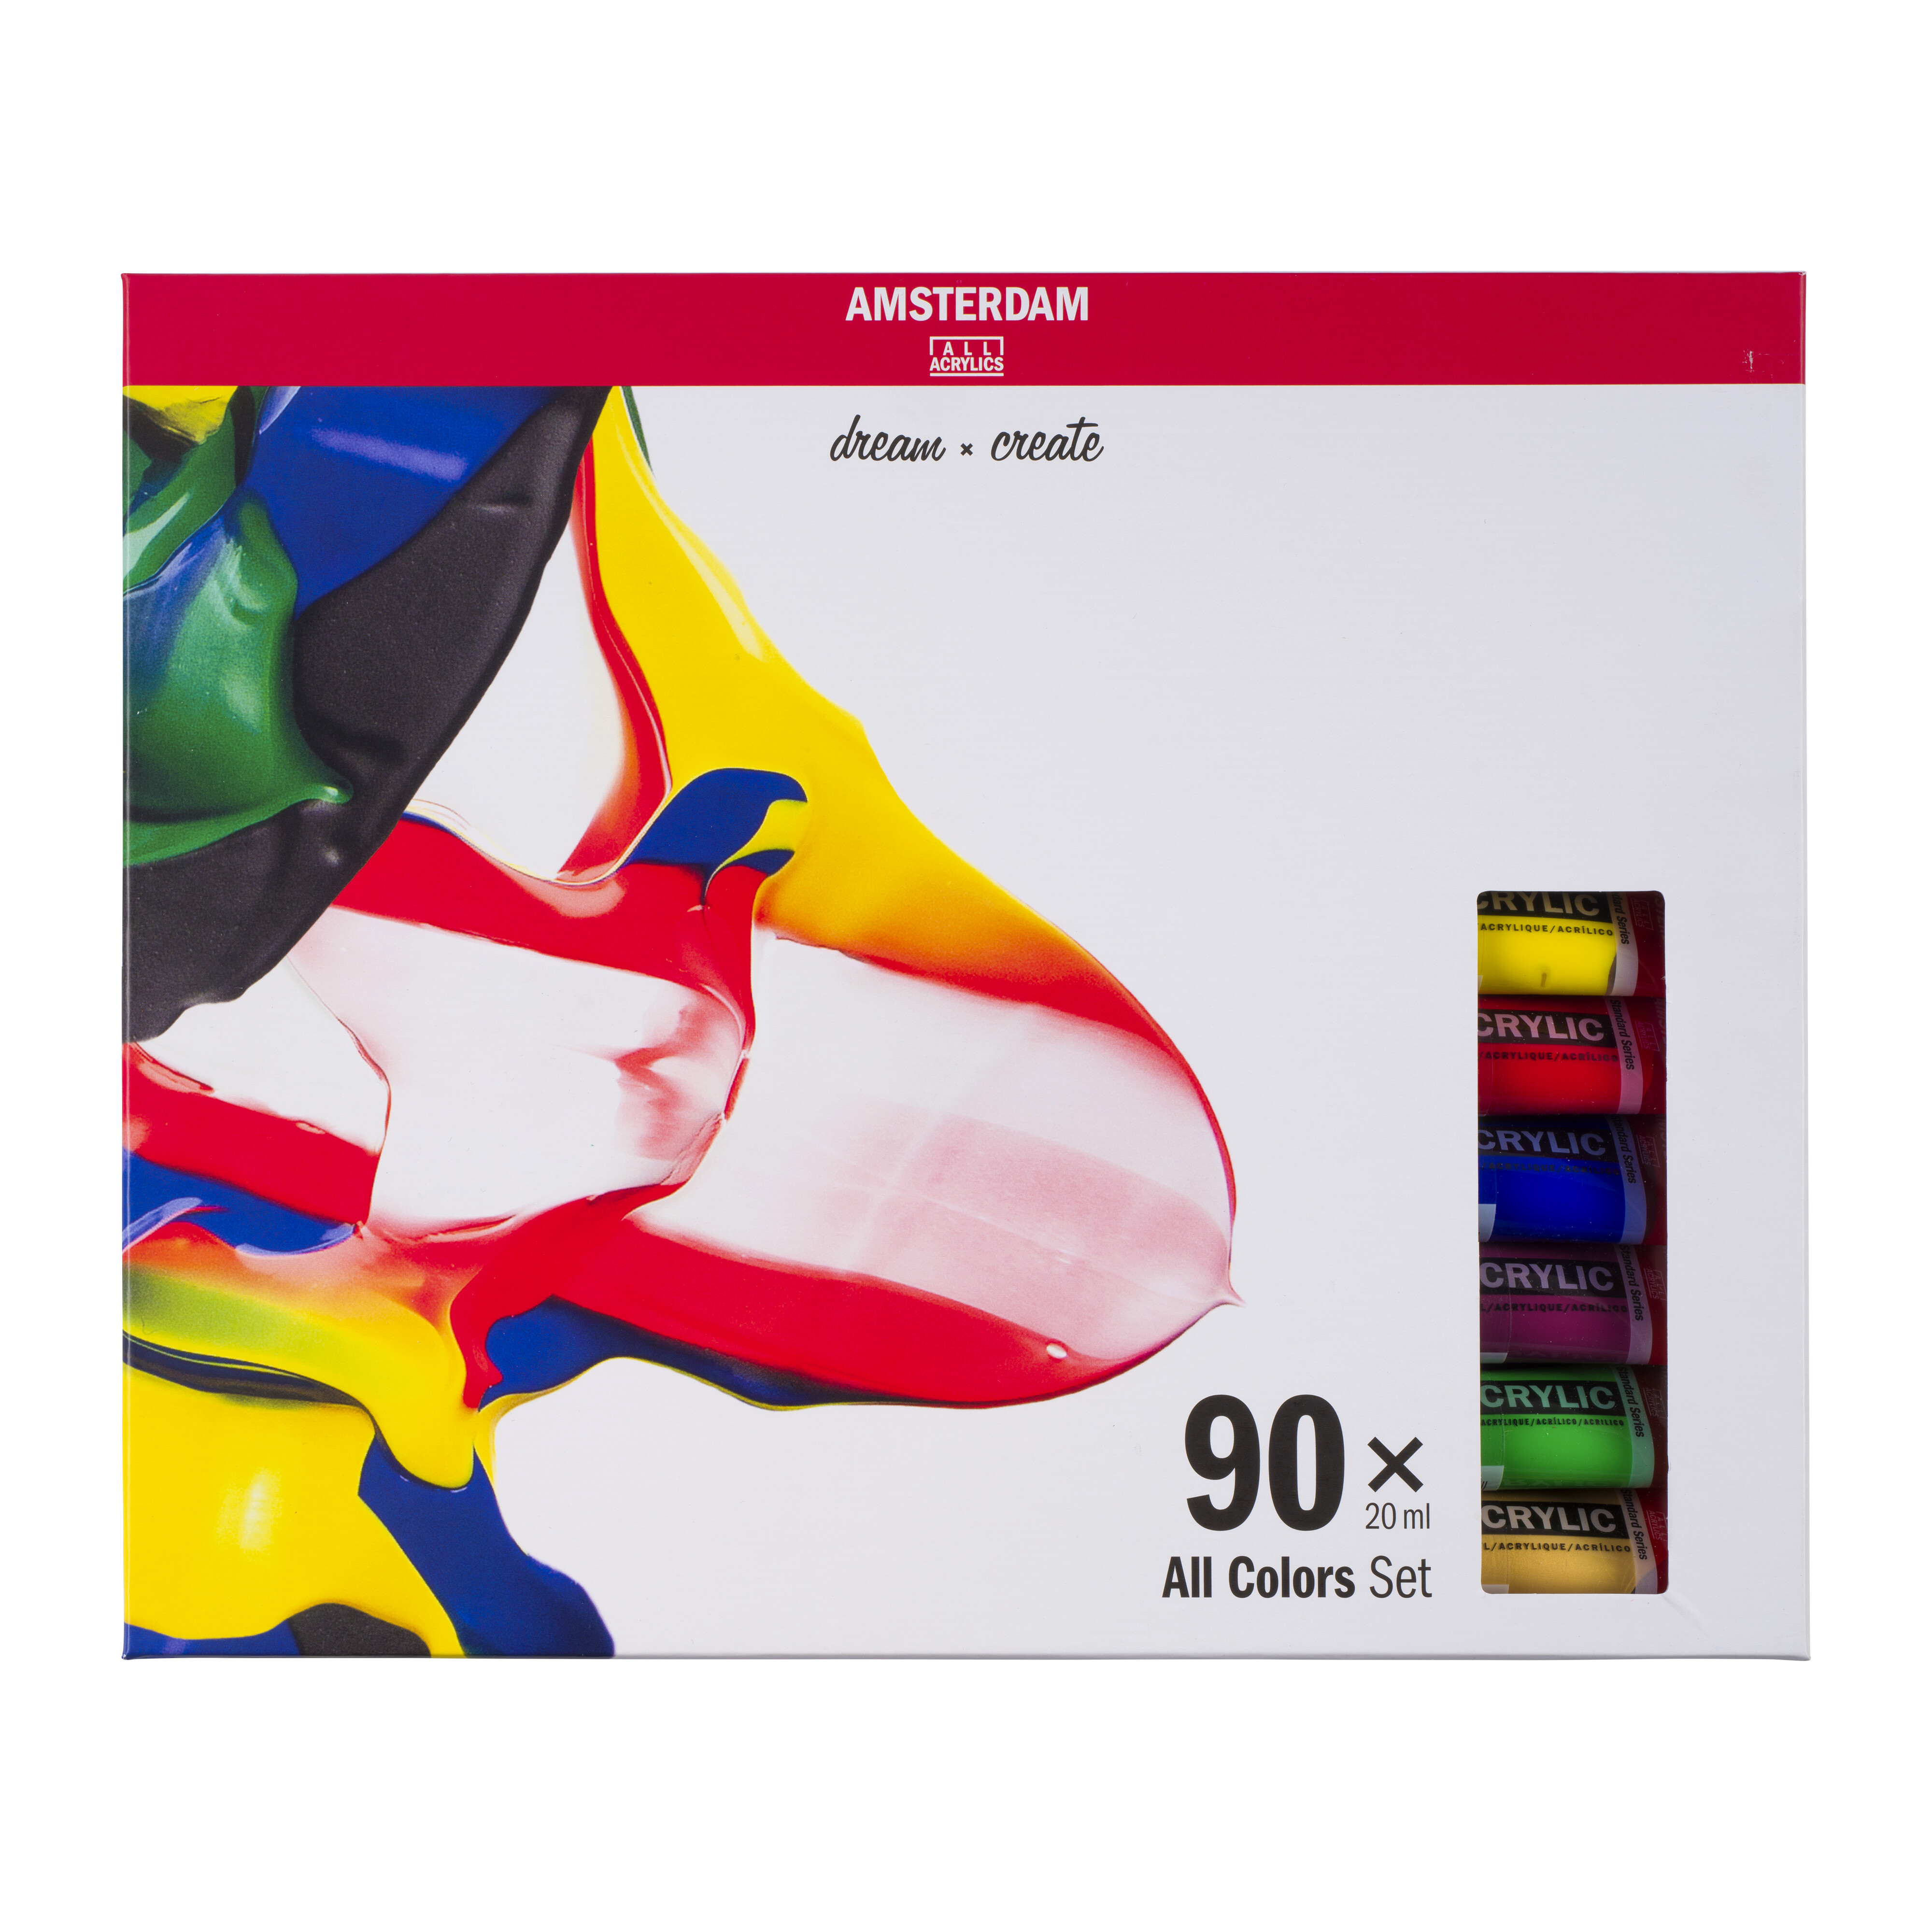 TALENS AMSTERDAM ZESTAW 90X20 ML ALL COLOURS